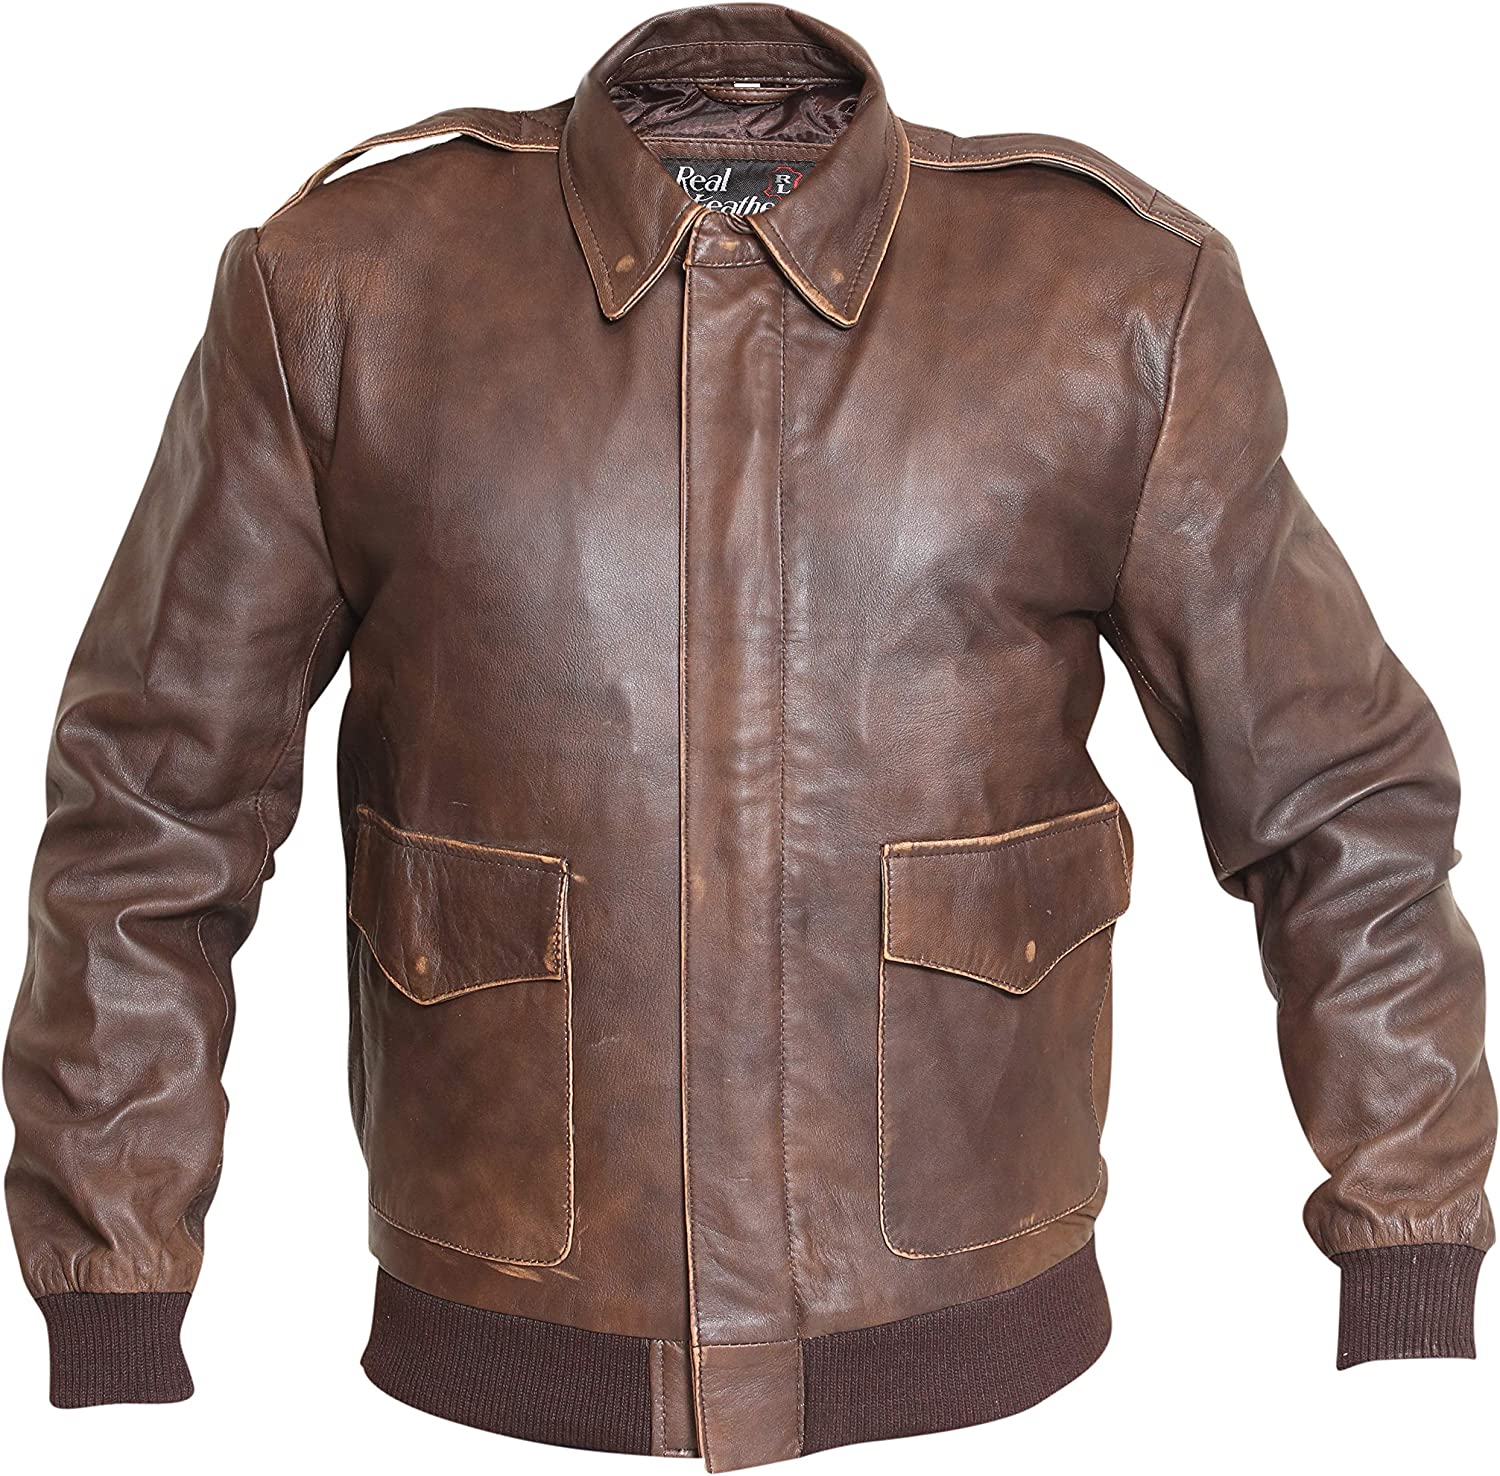 60s 70s Men's Jackets & Sweaters Aviator A2 Distressed Brown Real Leather Bomber Jacket $159.95 AT vintagedancer.com